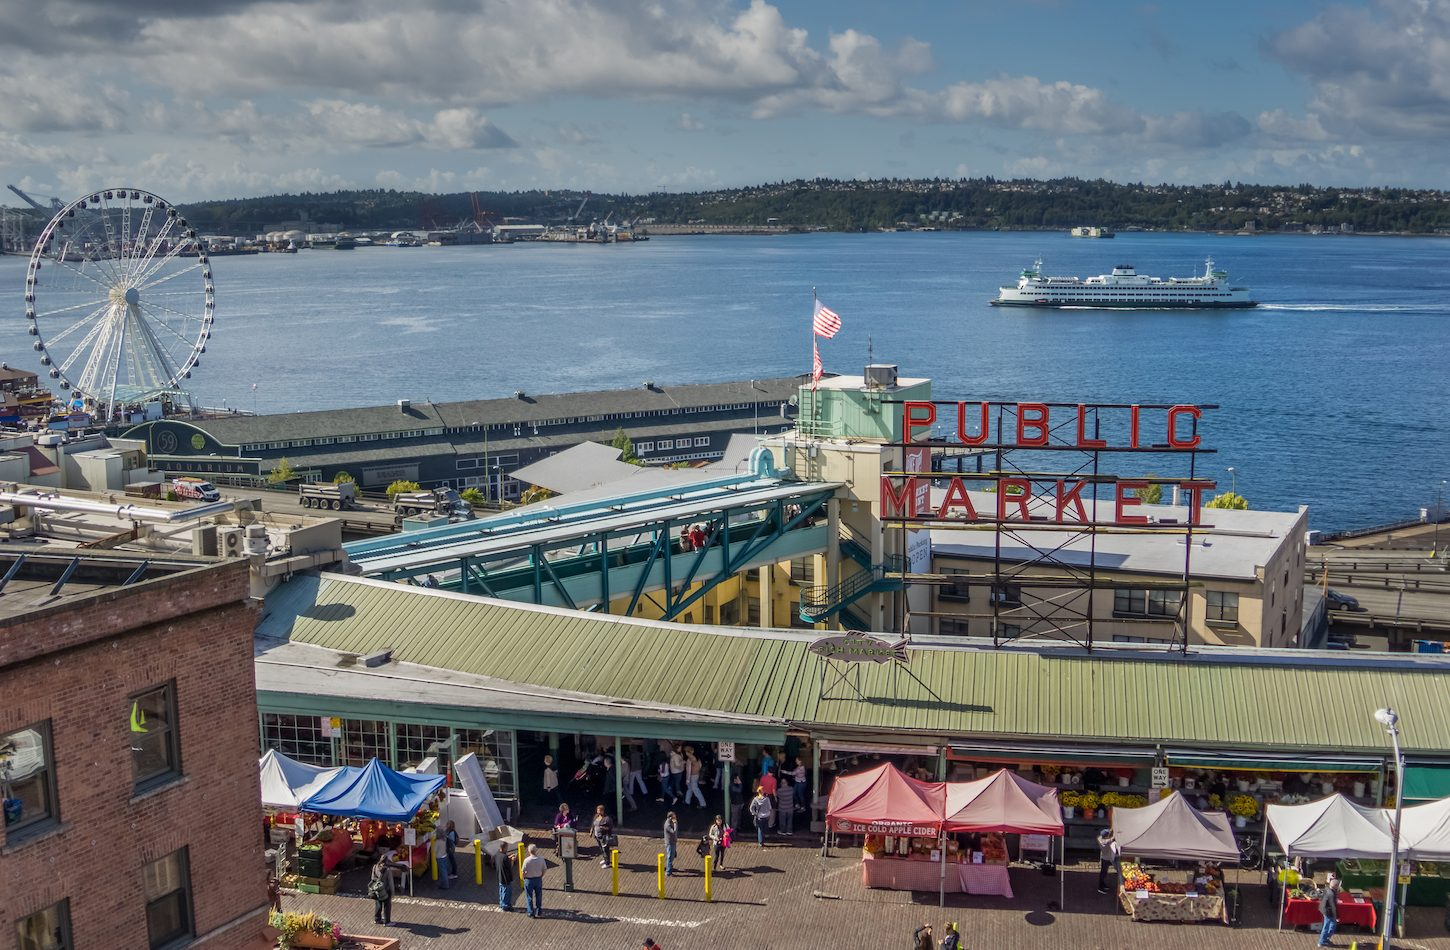 Pike Place Market, Seattle, WA. Elliot Bay, Pike Place Market, Visit Seattle, ferris wheel, ferry